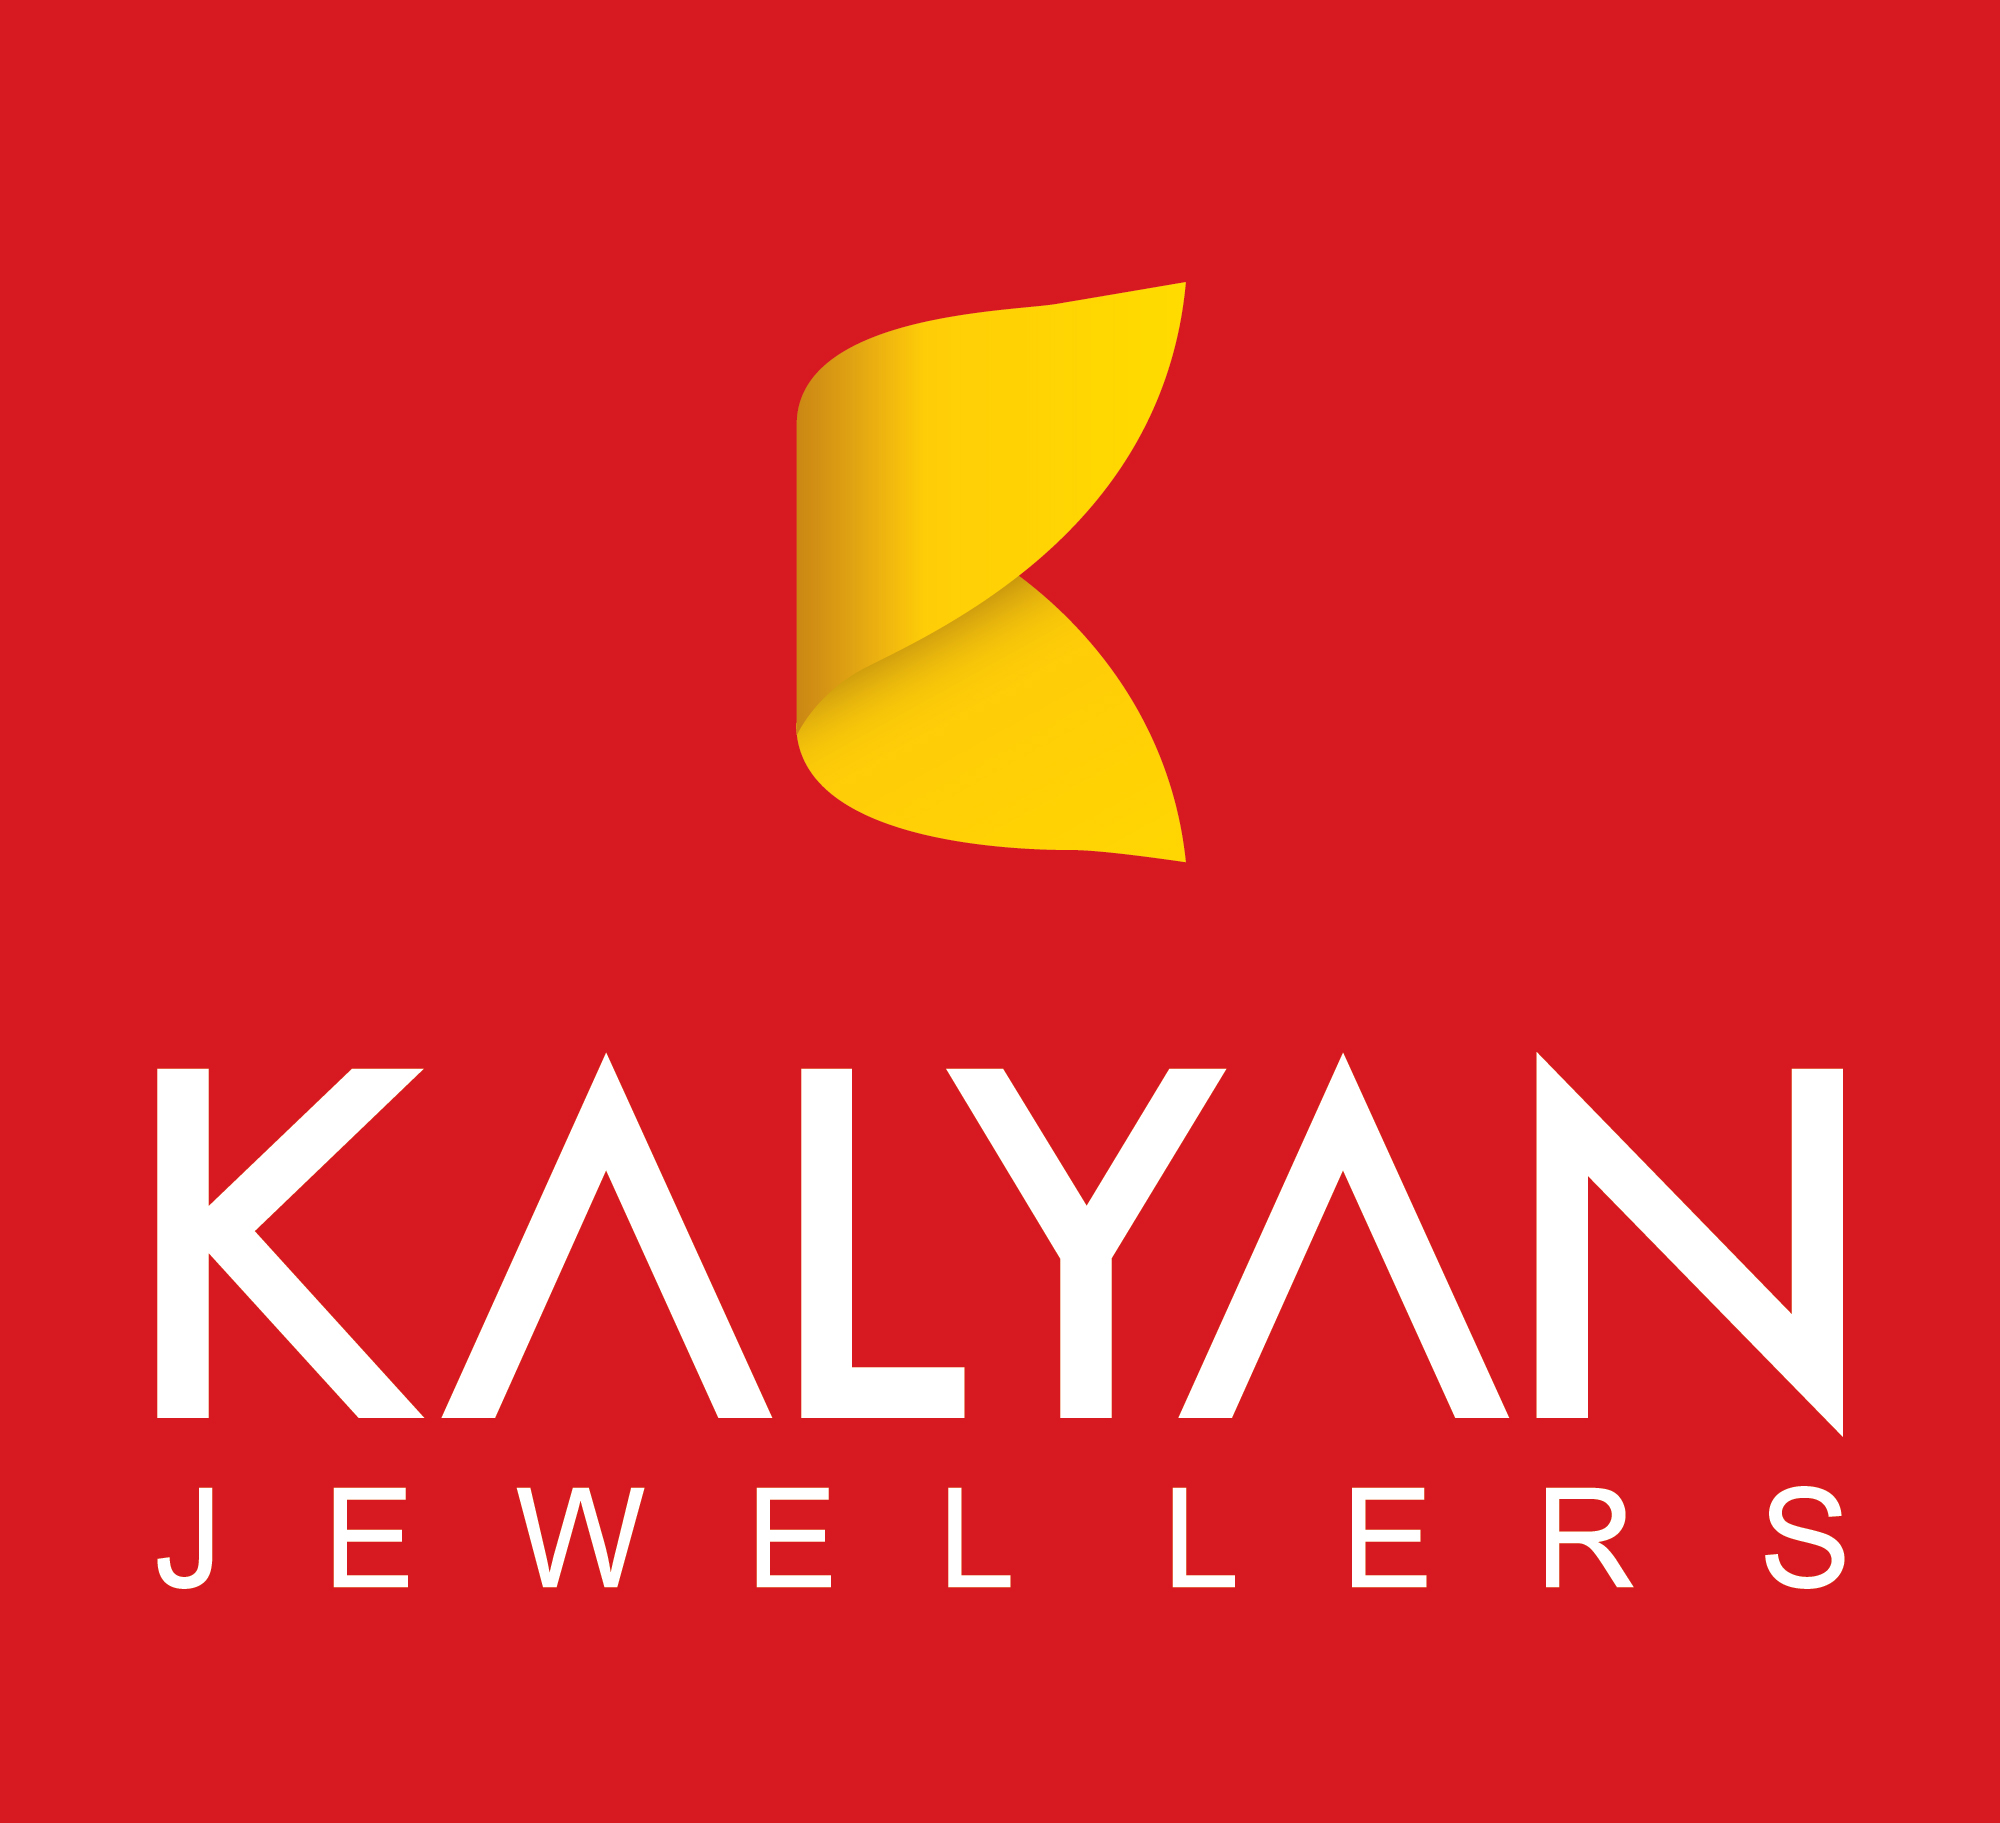 Kalyan jewellers mohali online dating